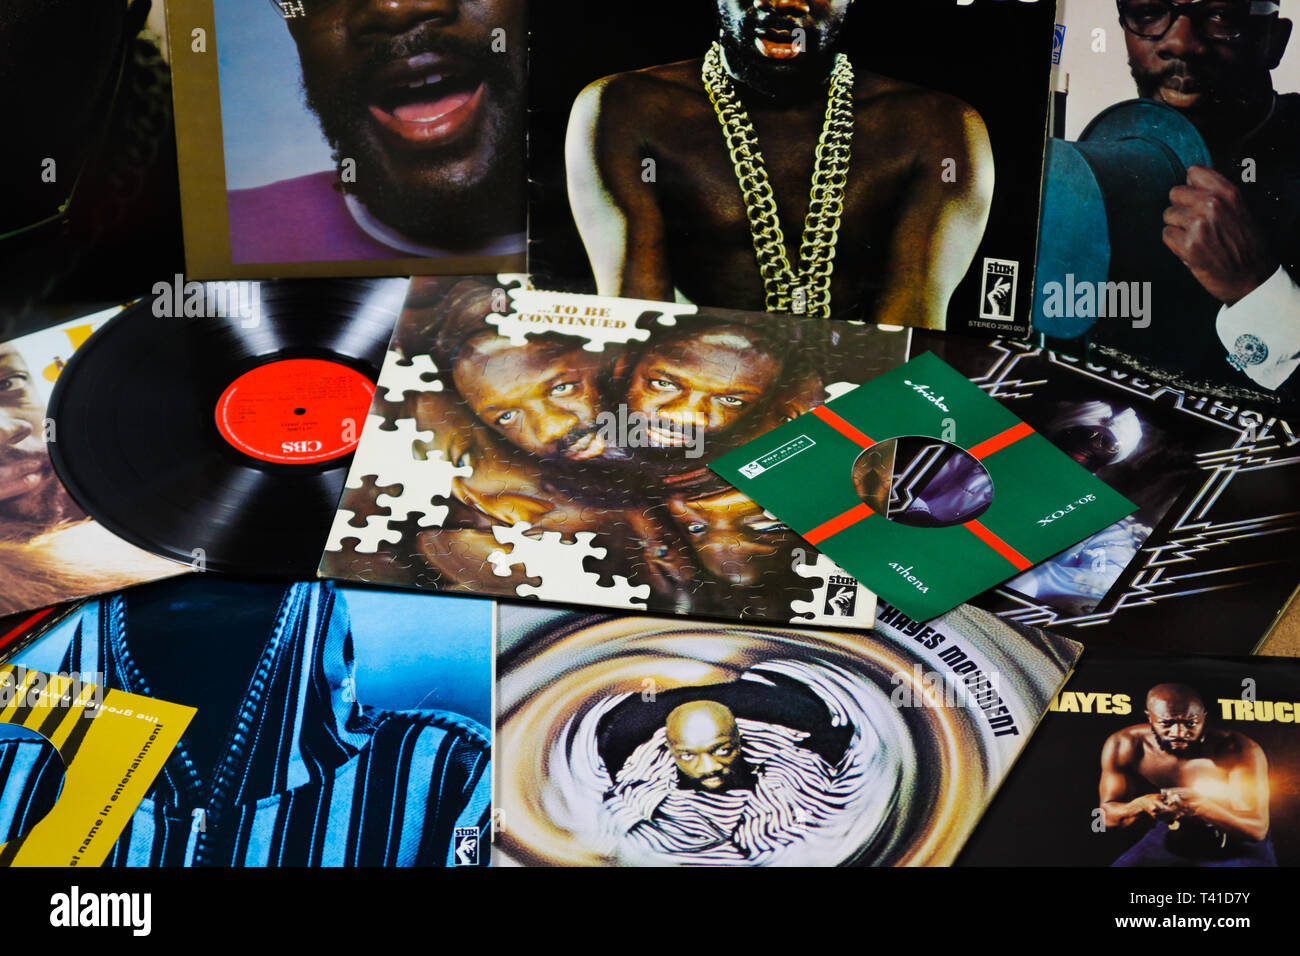 VIERSEN, GERMANY - MARCH 10. 2019: View on collection of Isaac Hayes vinyl records - Stock Image